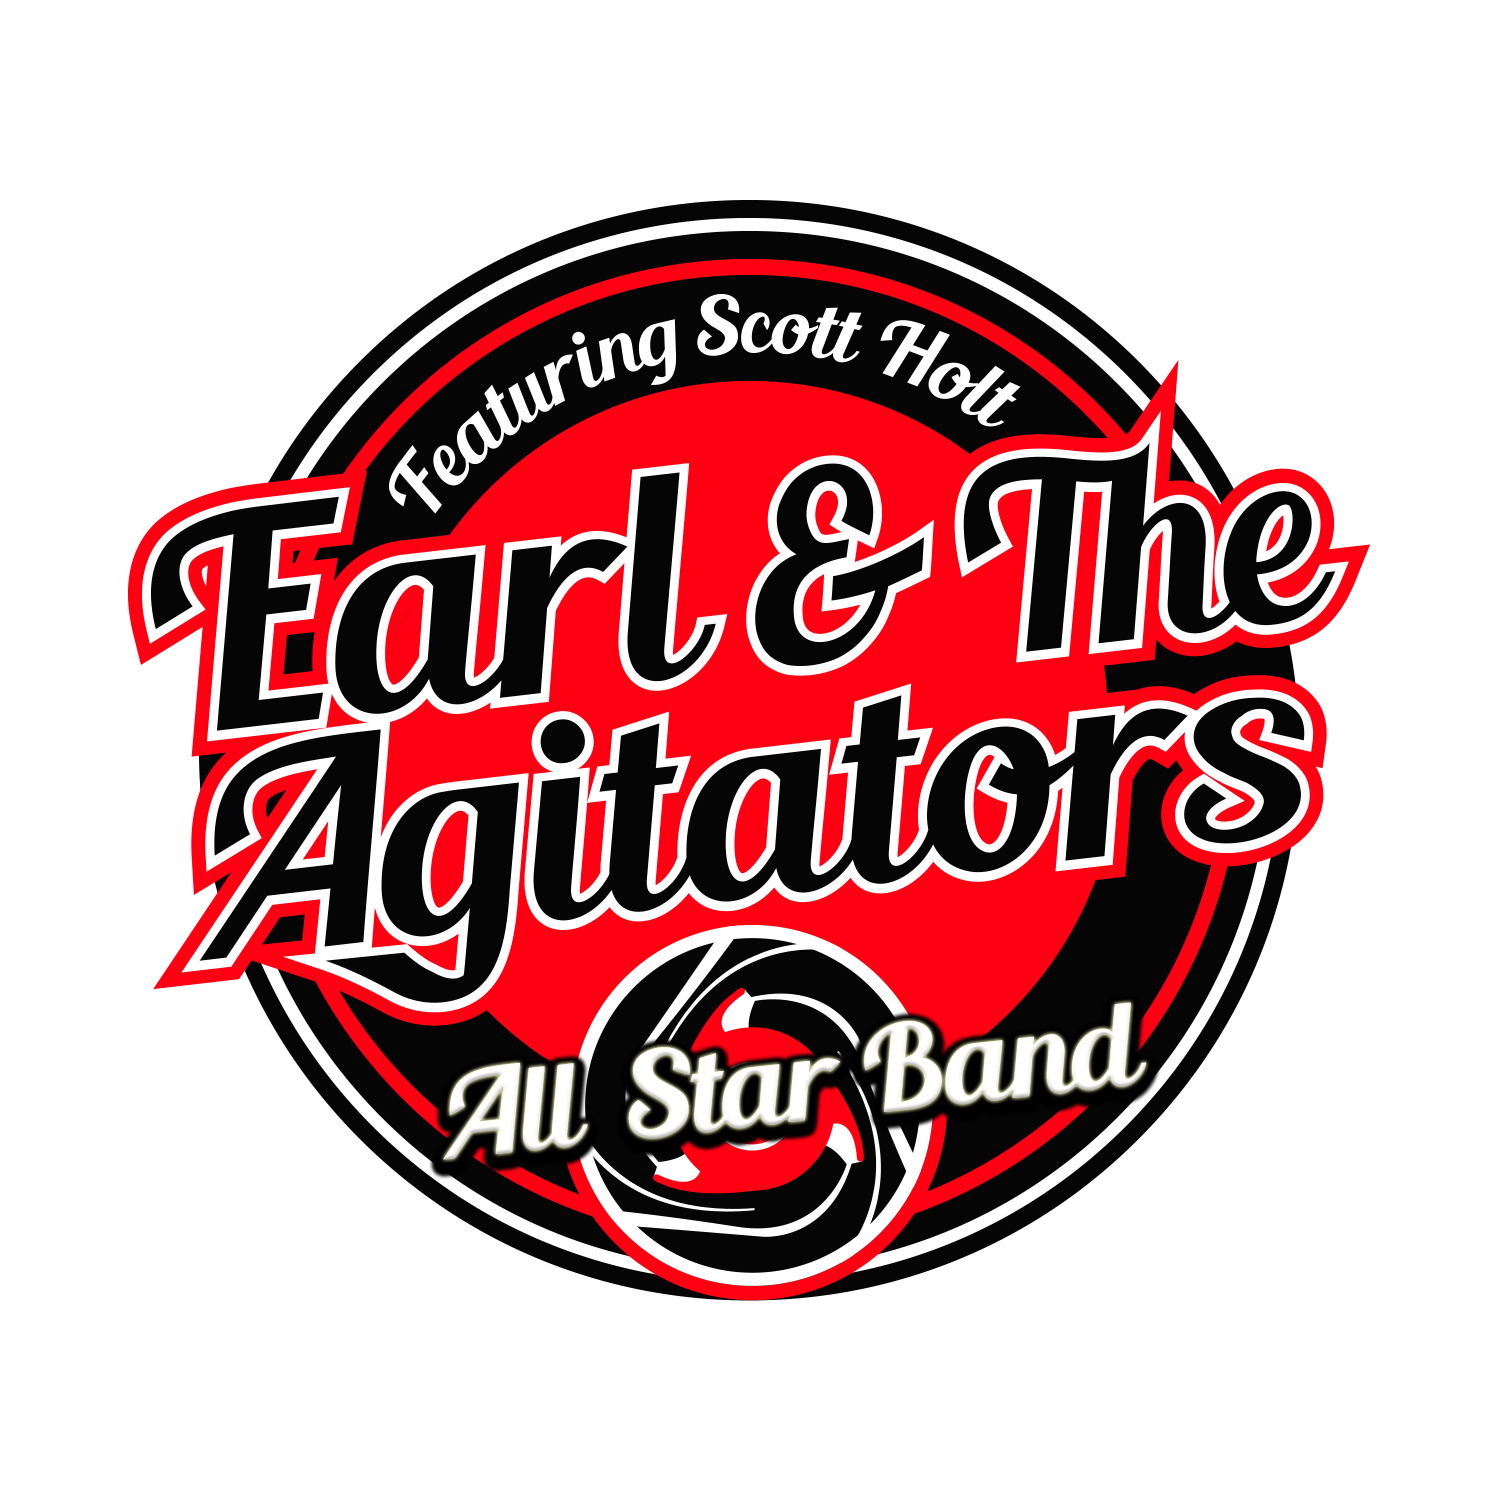 EATA-ALL-STAR-BAND-LOGO-HI-RES-PNG-WITH-TRANSPARENT-BACKGROUND